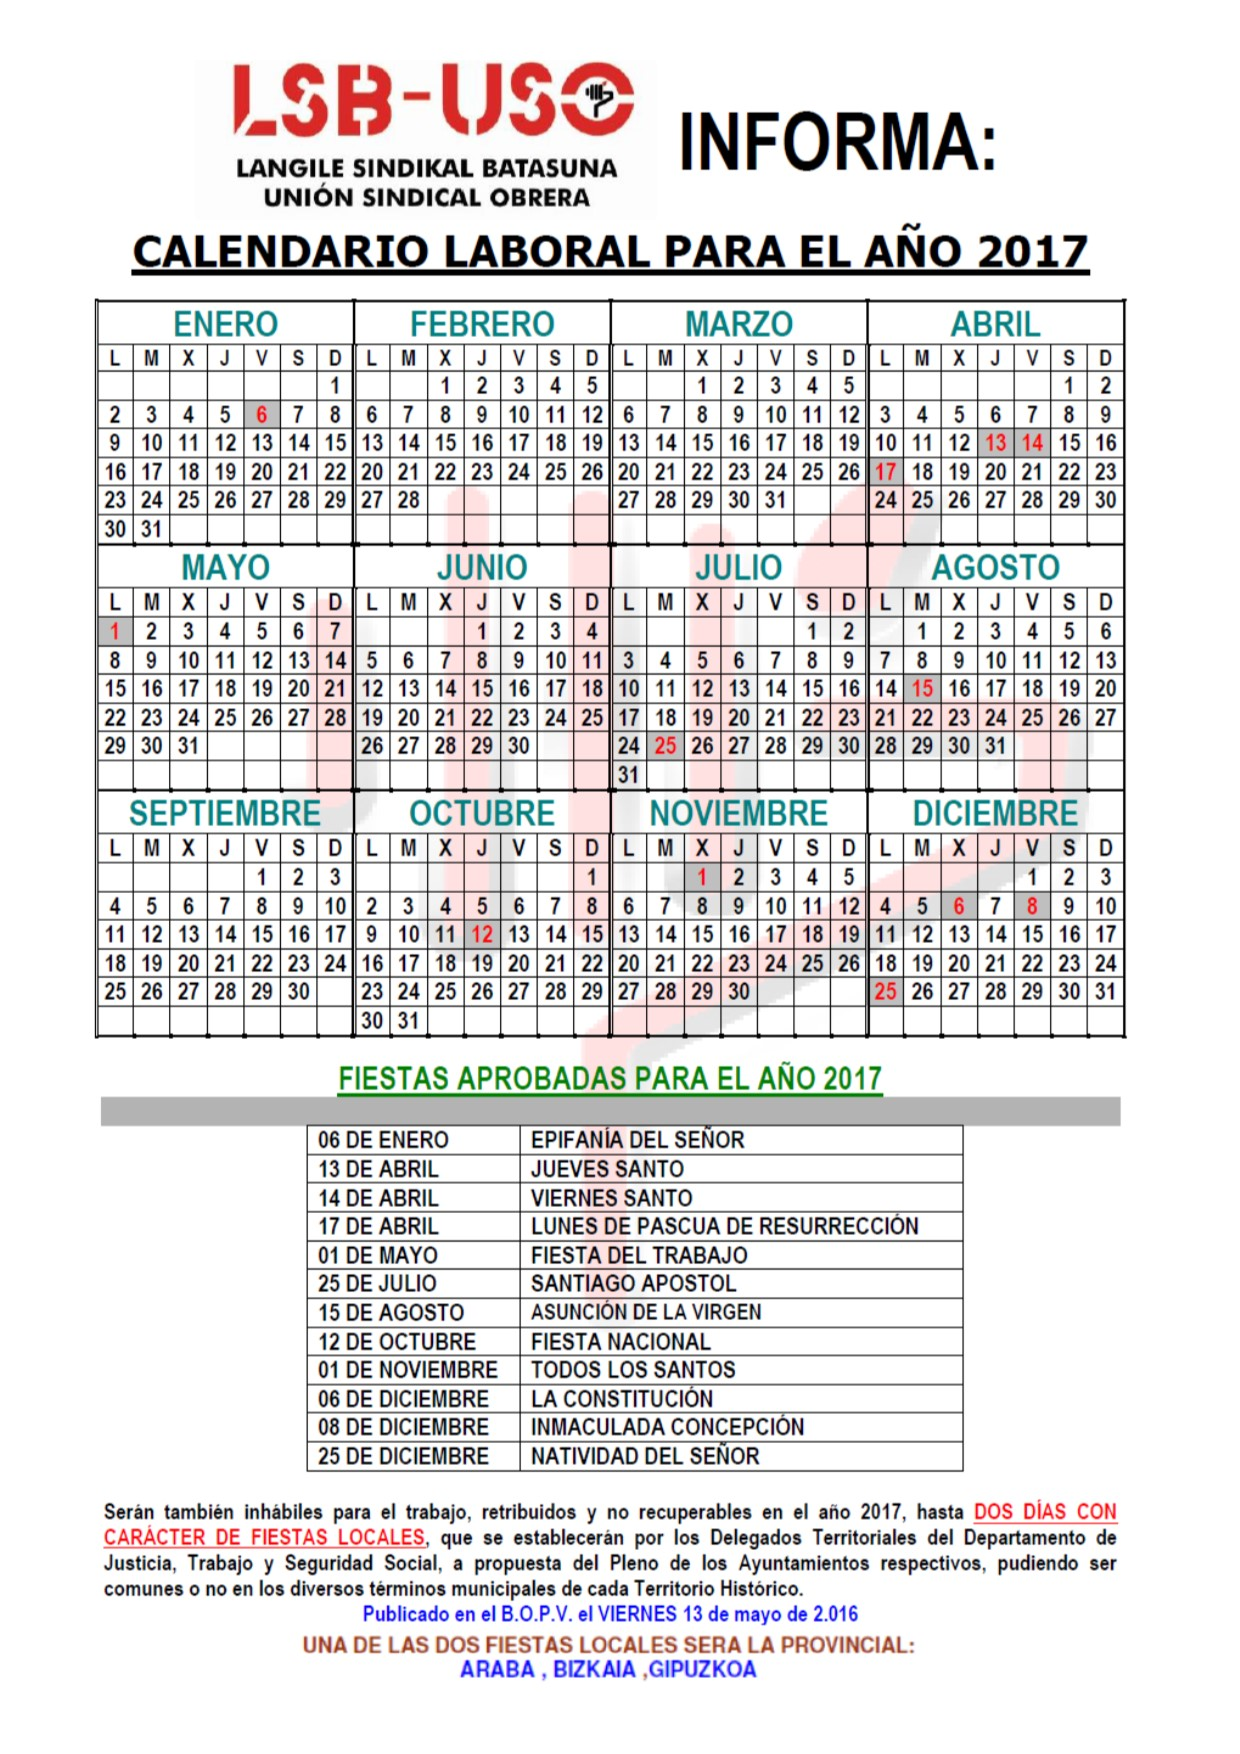 Calendario Laboral Construccion 2020.Calendario Laboral Lsb Uso